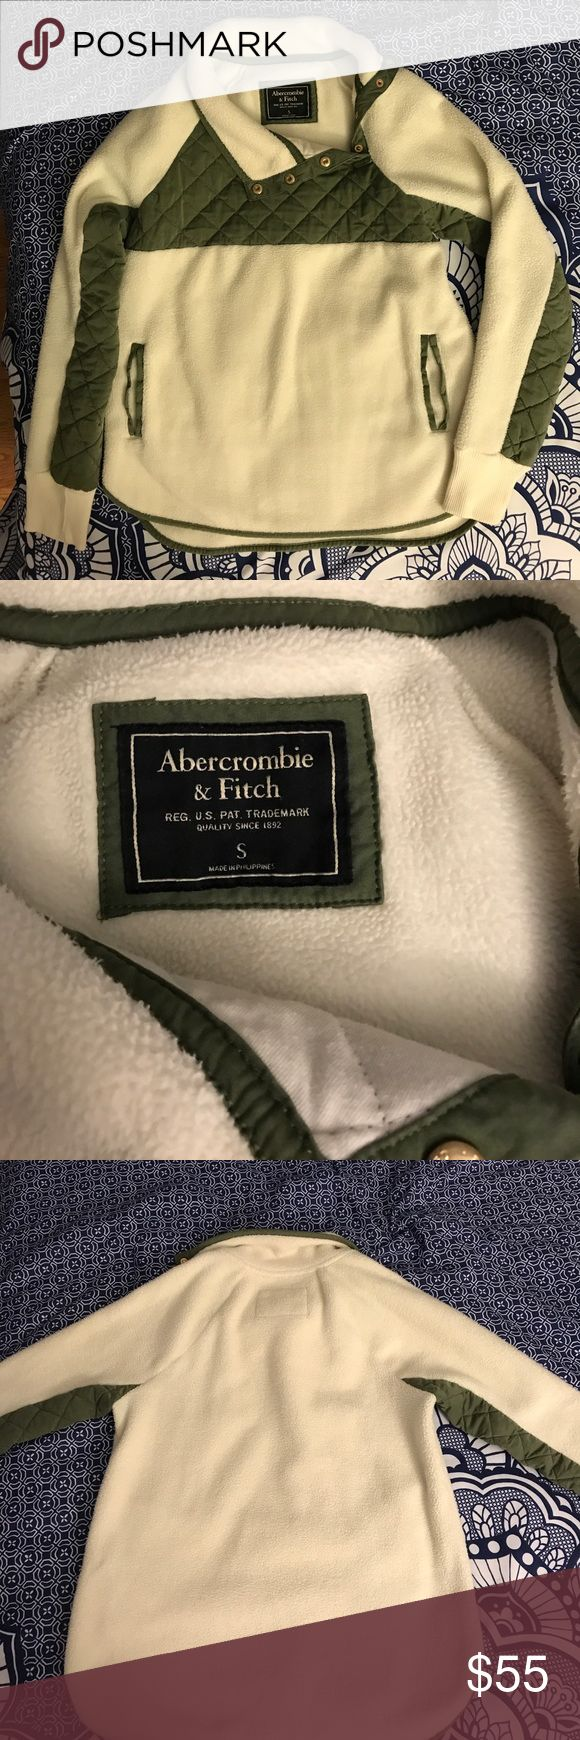 Abercrombie & Fitch asymmetrical snap hoodie This pullover is all over Instagram this season and comes highly rated. This was bought from another posher and I absolutely love it but unfortunately the color just doesn't work with my skin tone. It is a cream color with olive green accents. Abercrombie & Fitch Tops Sweatshirts & Hoodies